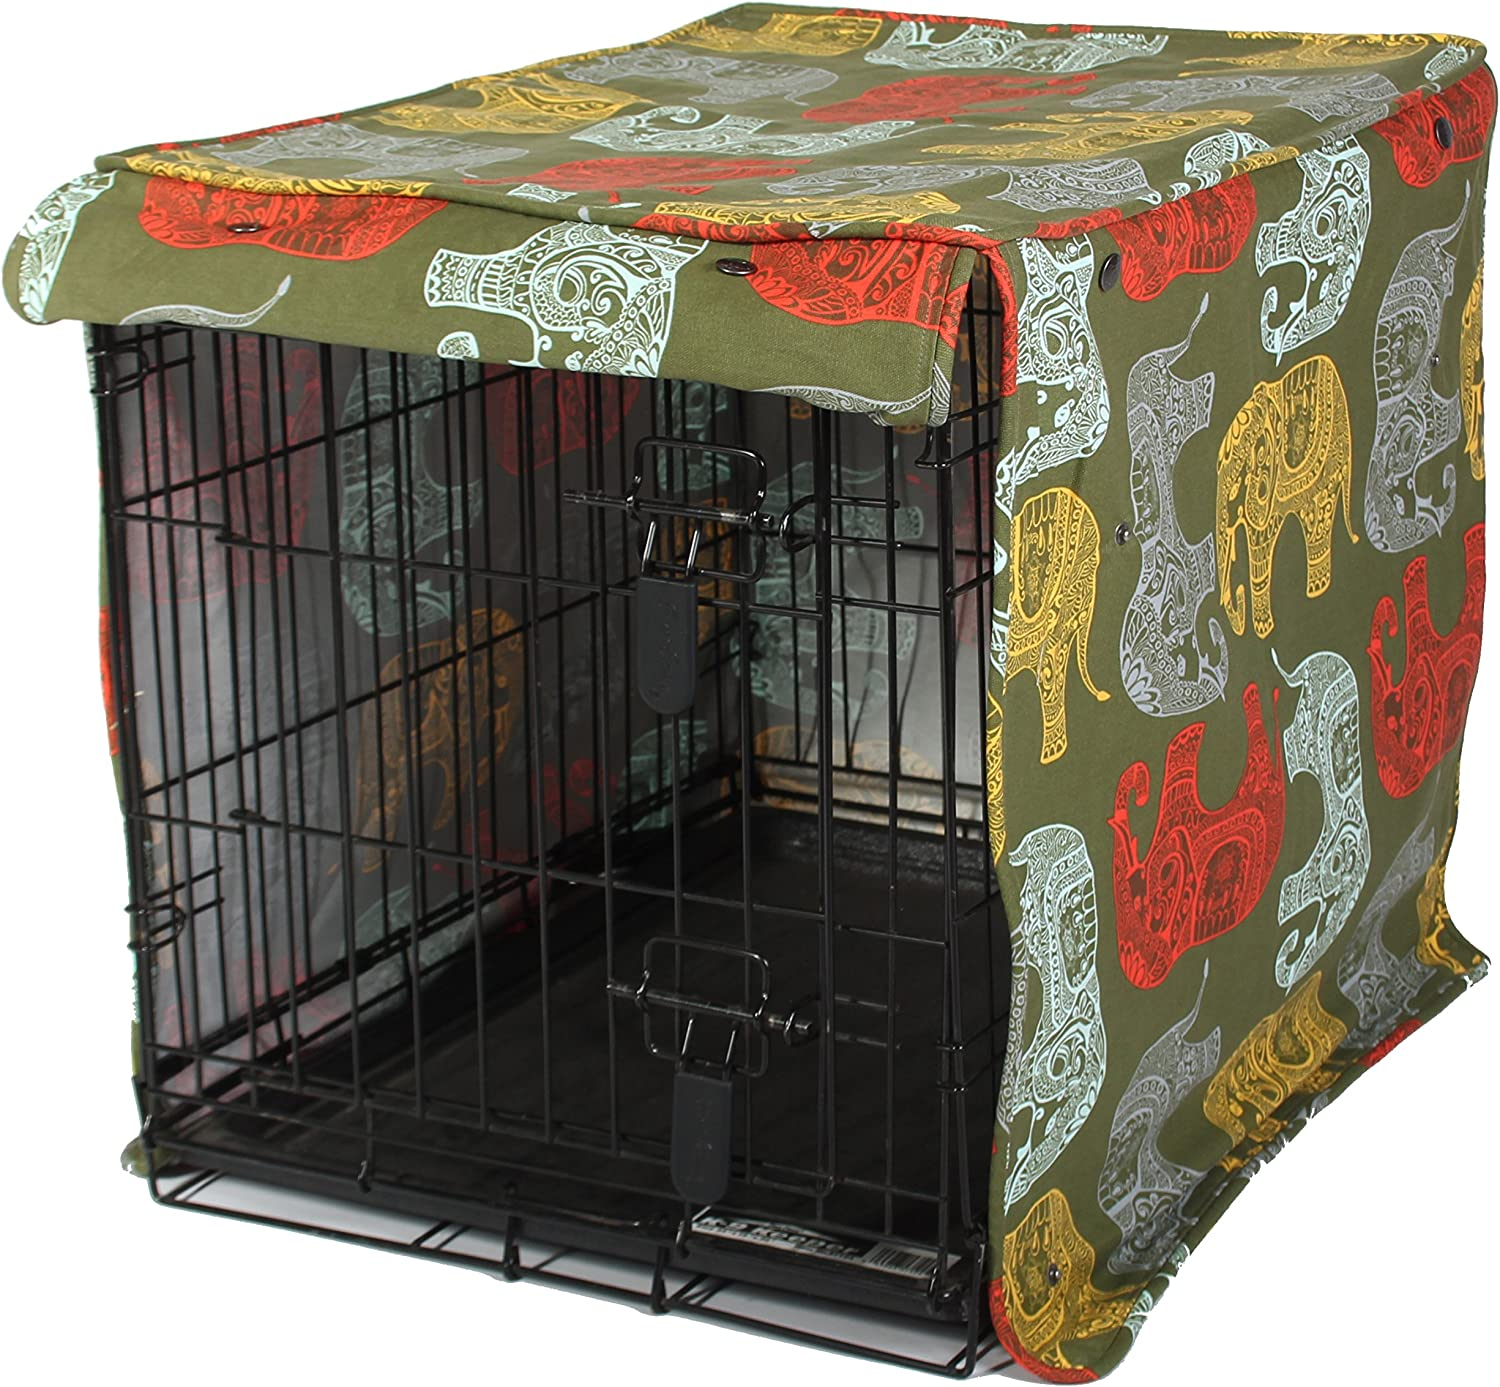 Molly Mutt Dog Crate Cover - Dog Kennel Cover - Dog Crates Cover - Cover for Dog Crate - Create A Dog Crate That Looks Like Furniture - Small Kennel Cover - Fabric Crate Cover - Dog Kennel Covers